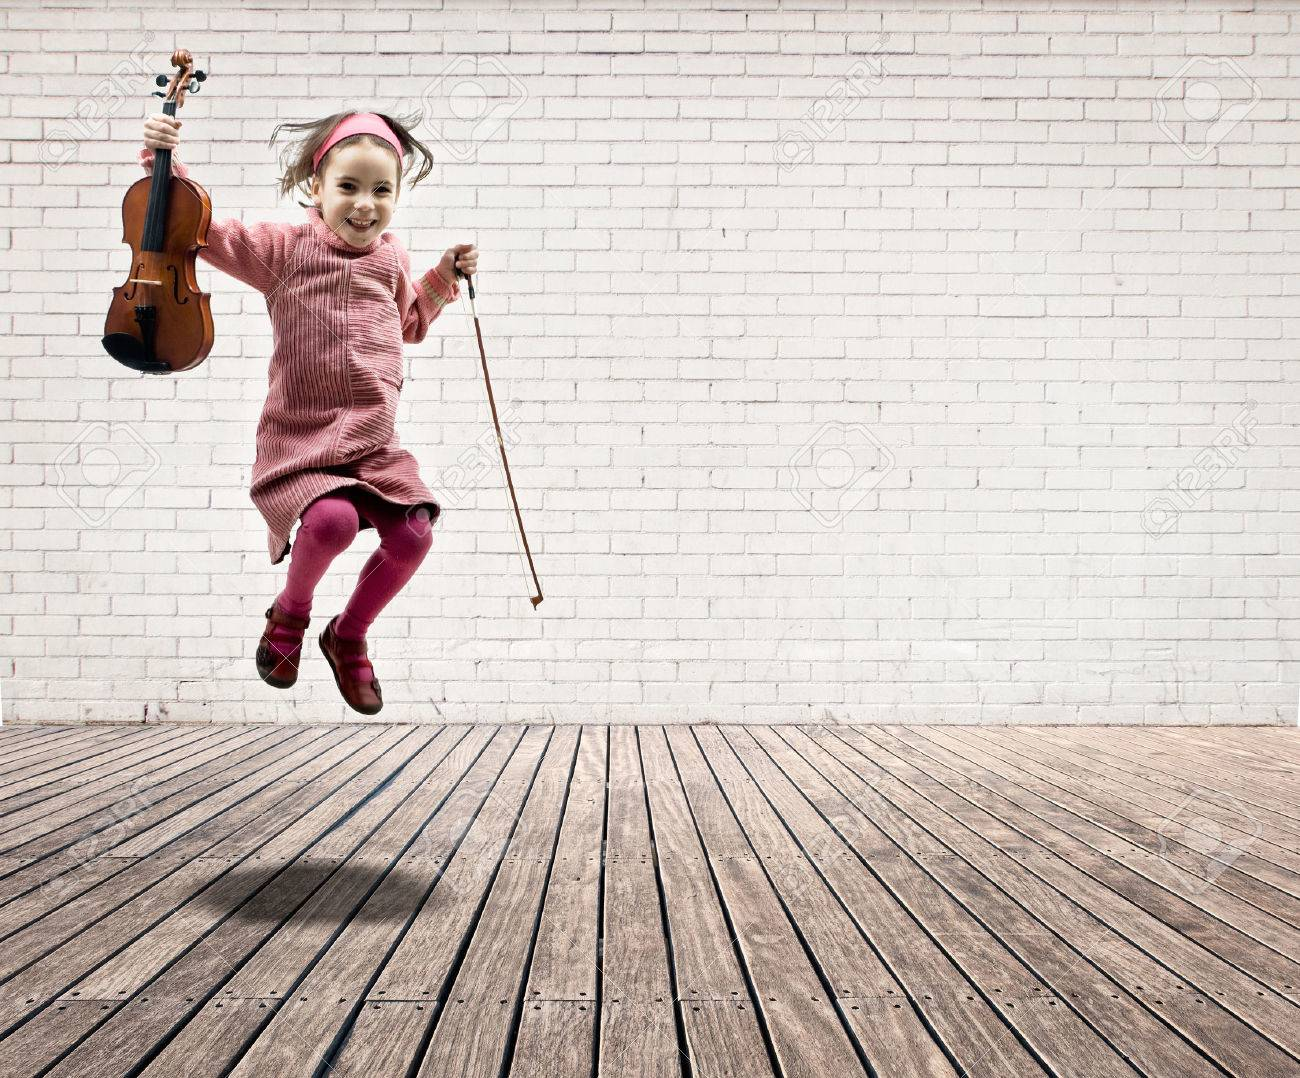 Empty room with chair violin and sheet music on floor photograph - Music Room Little Girl With Violin Jumping On A Room With White Bricks Wall And